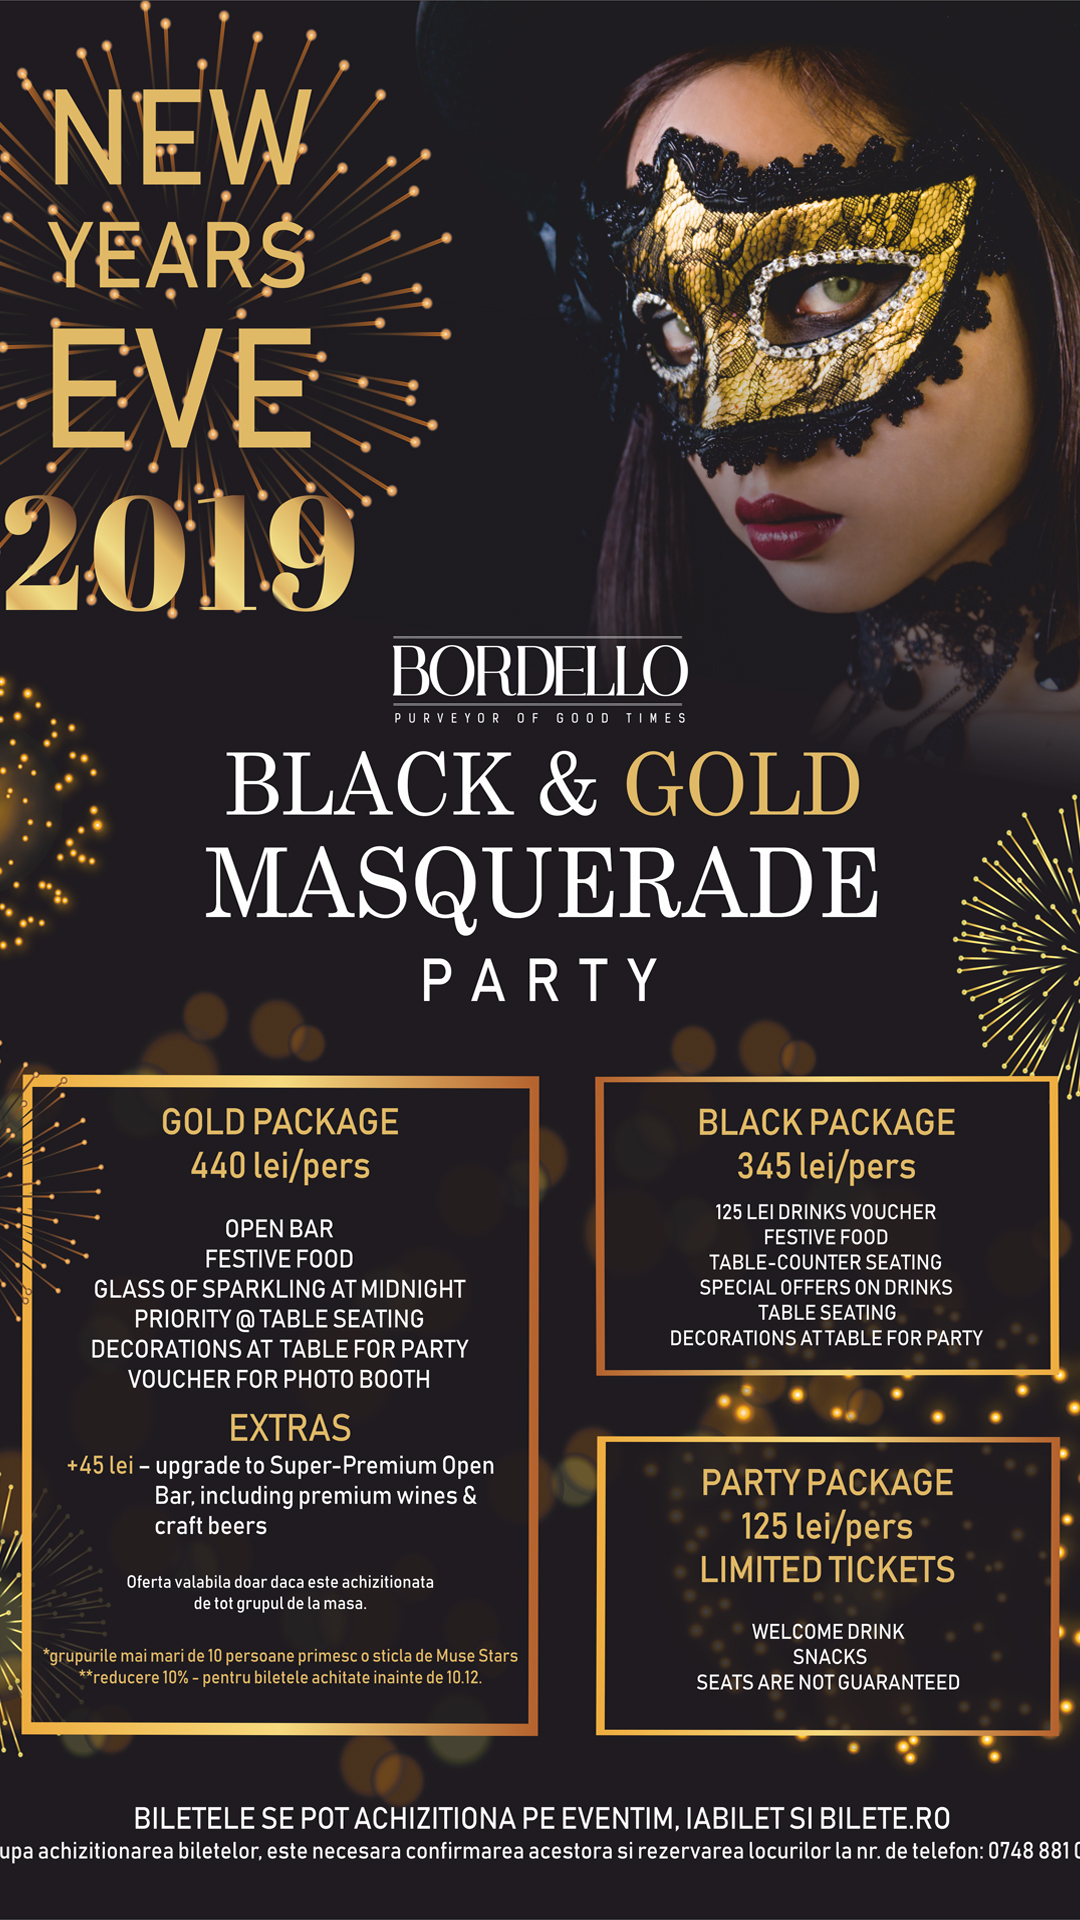 Black & Gold Masquerade Party